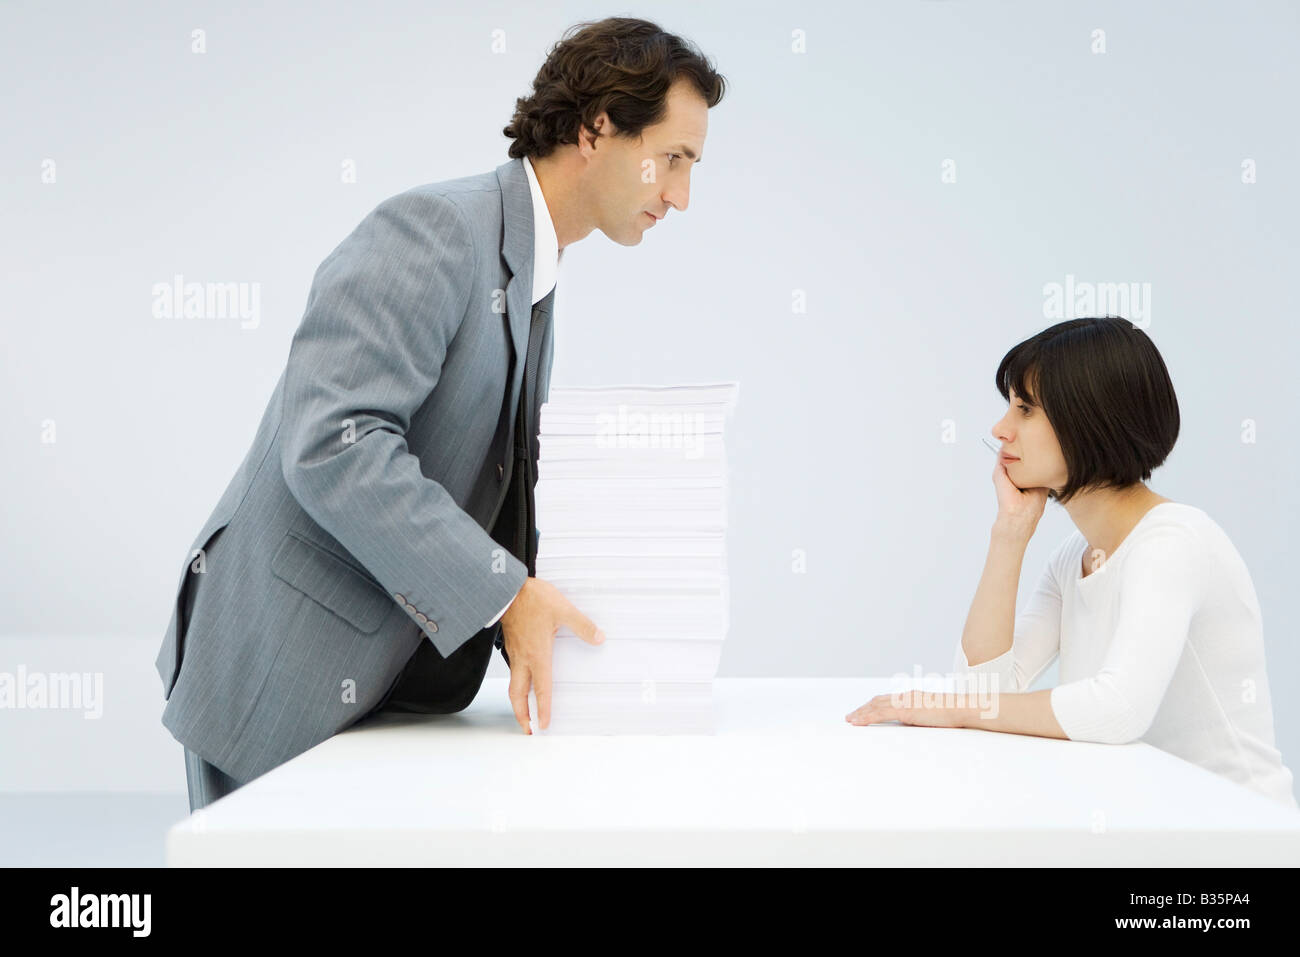 Businessman sliding tall stack of paper across a table to woman leaning on her elbow - Stock Image